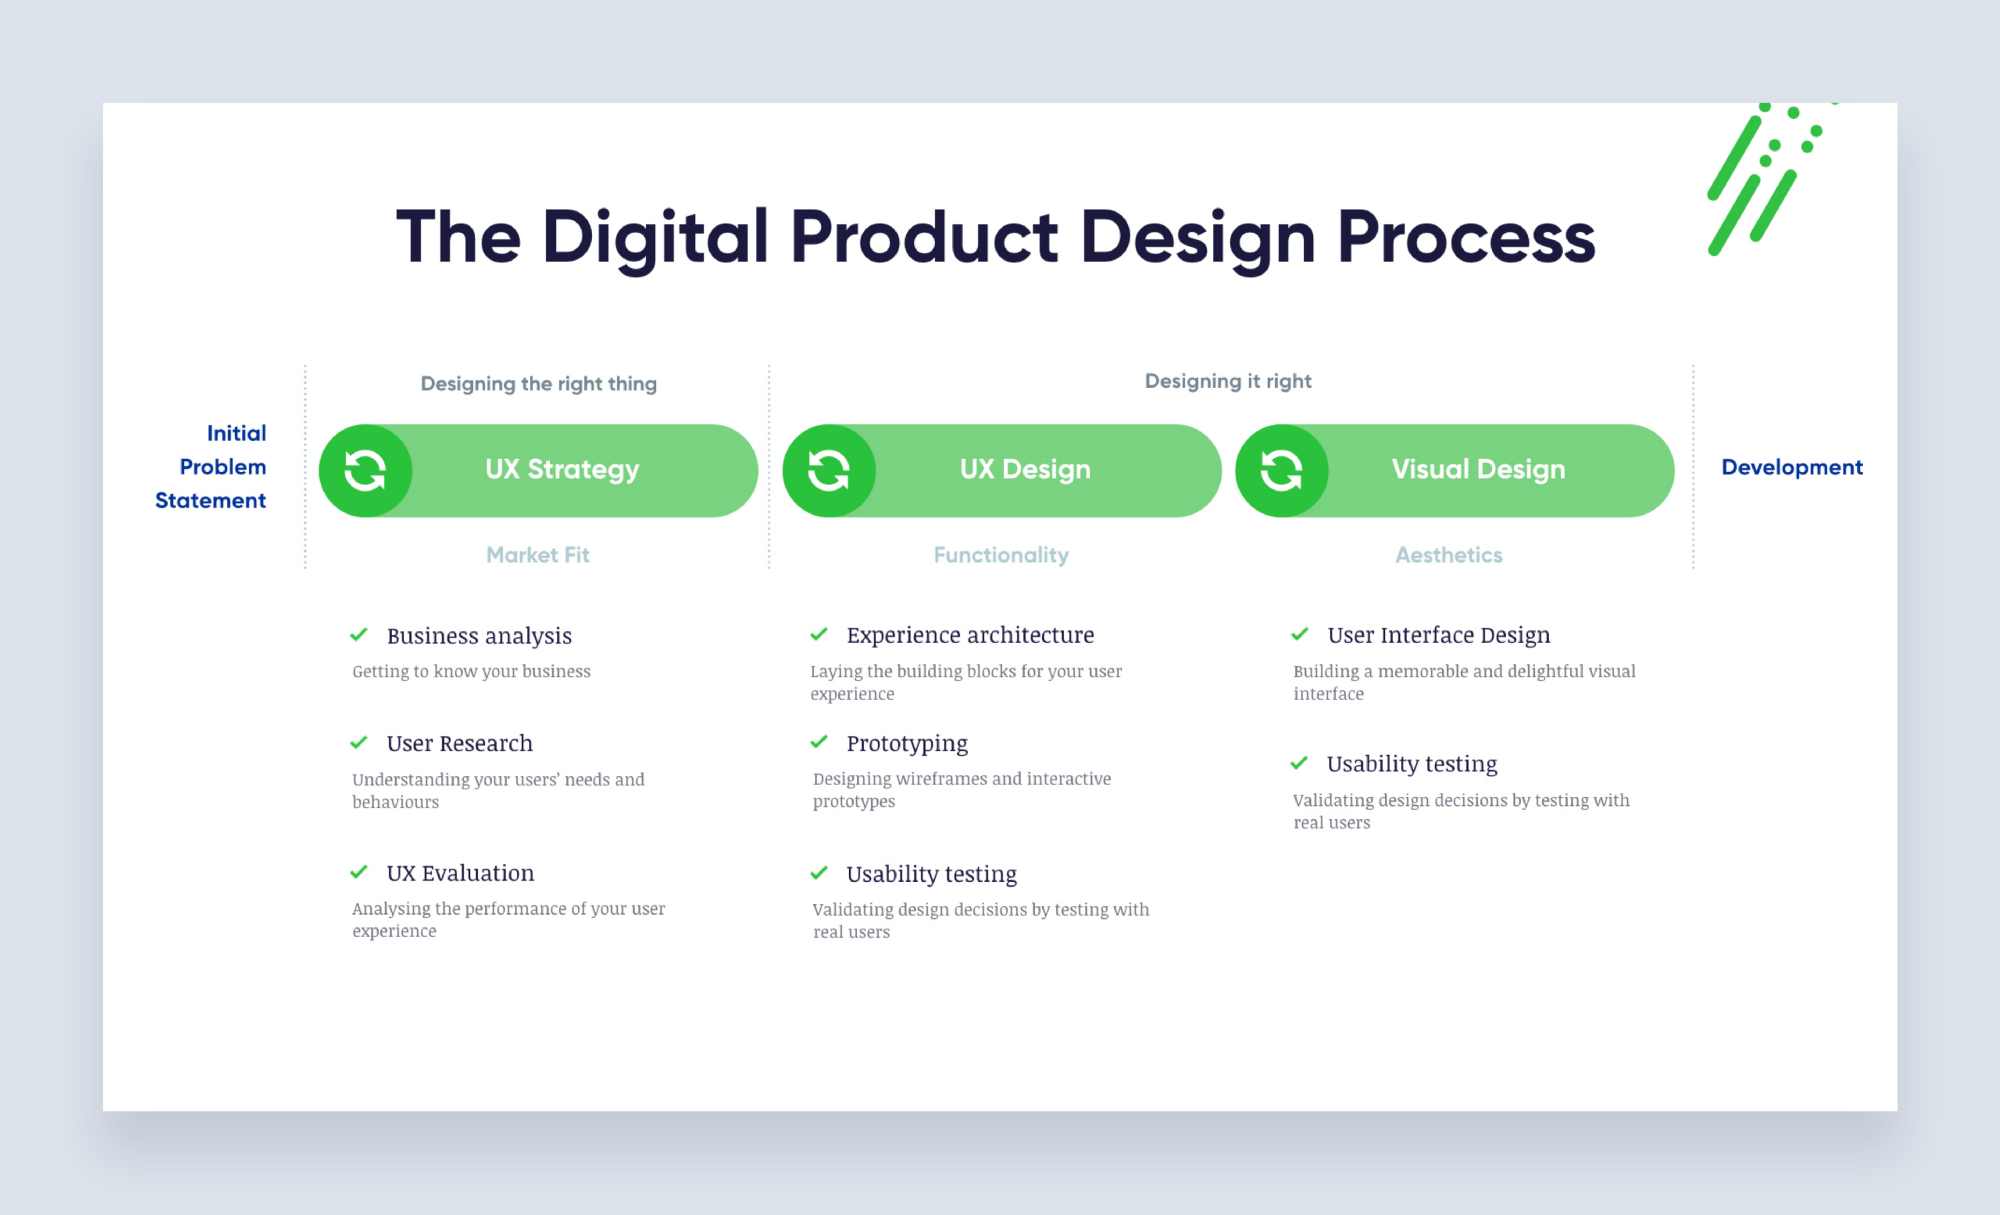 Best Practices for Digital Product Design Process